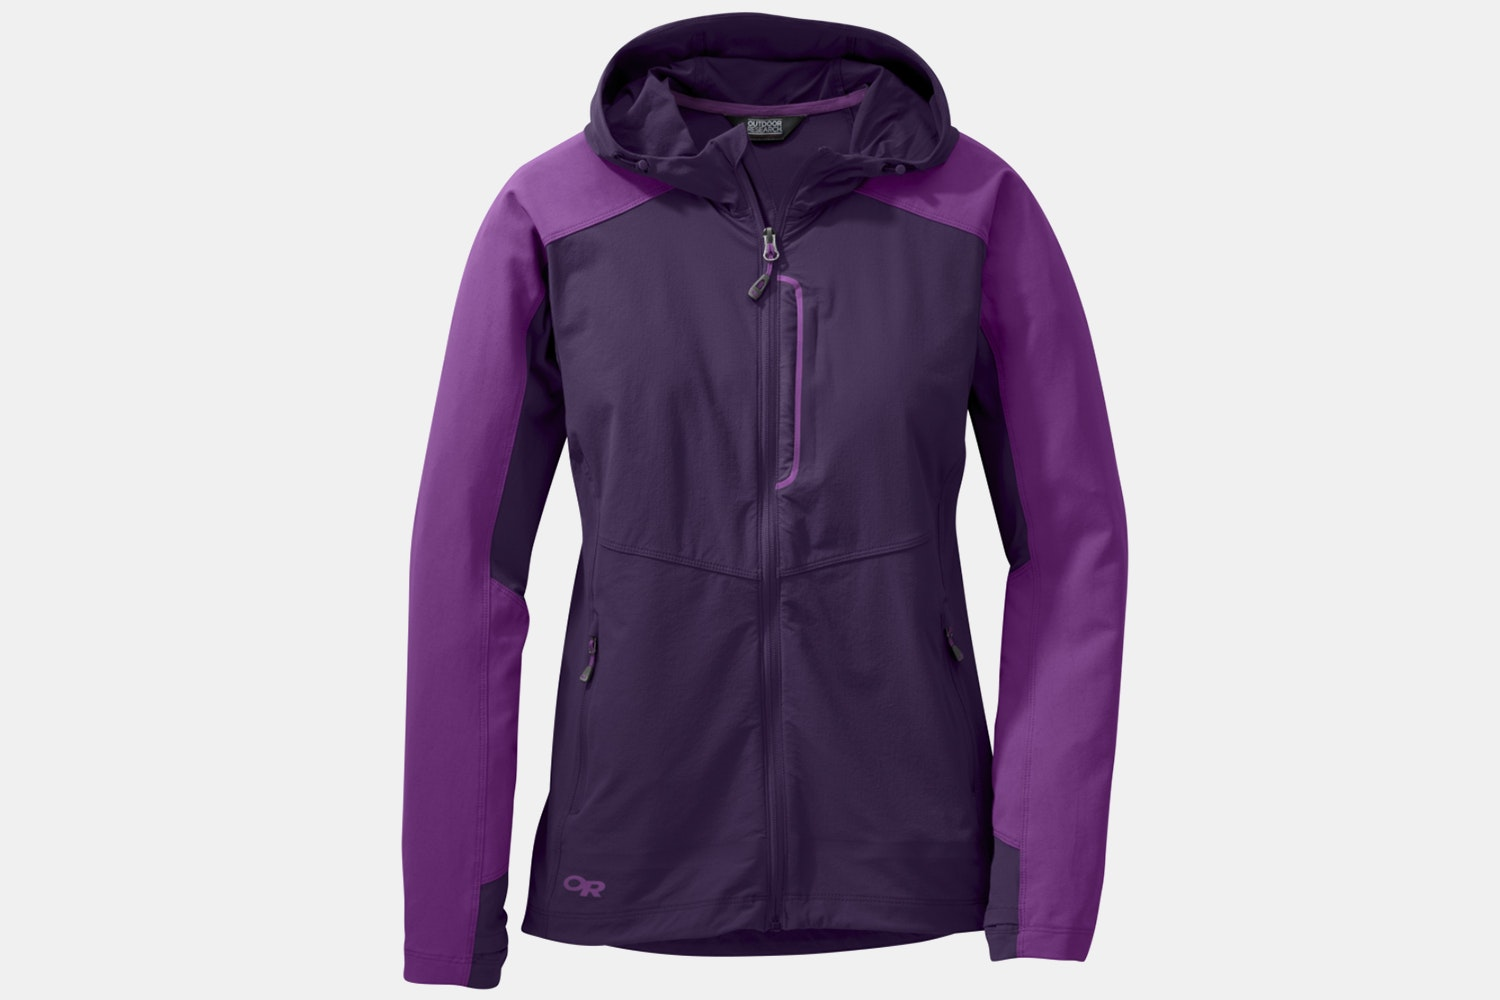 Women's – Elderberry/Wisteria